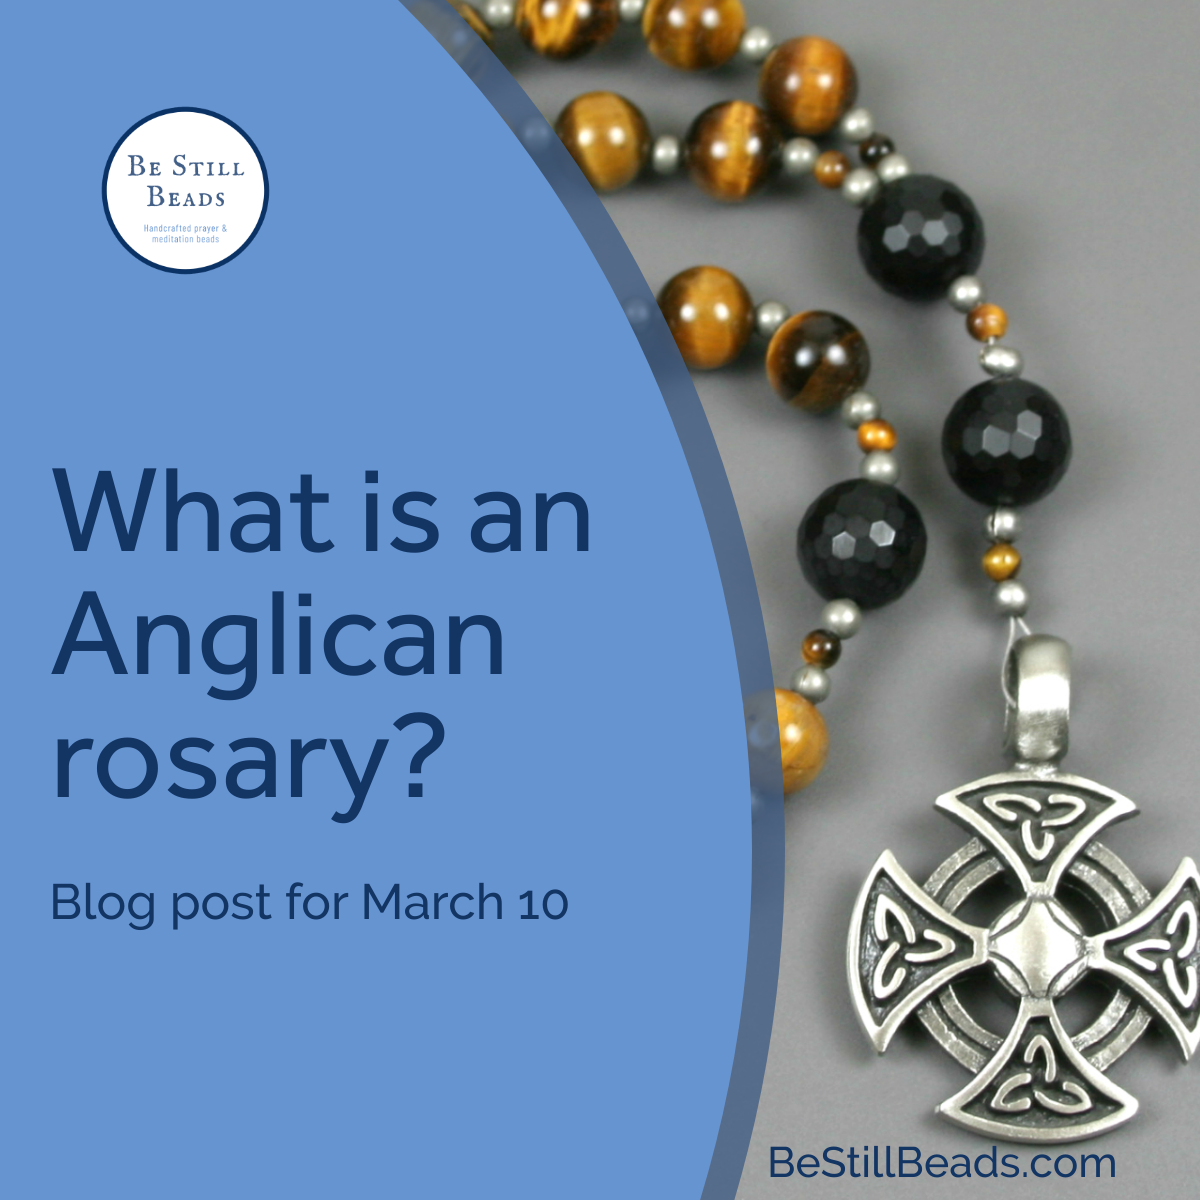 What is an Anglican rosary?